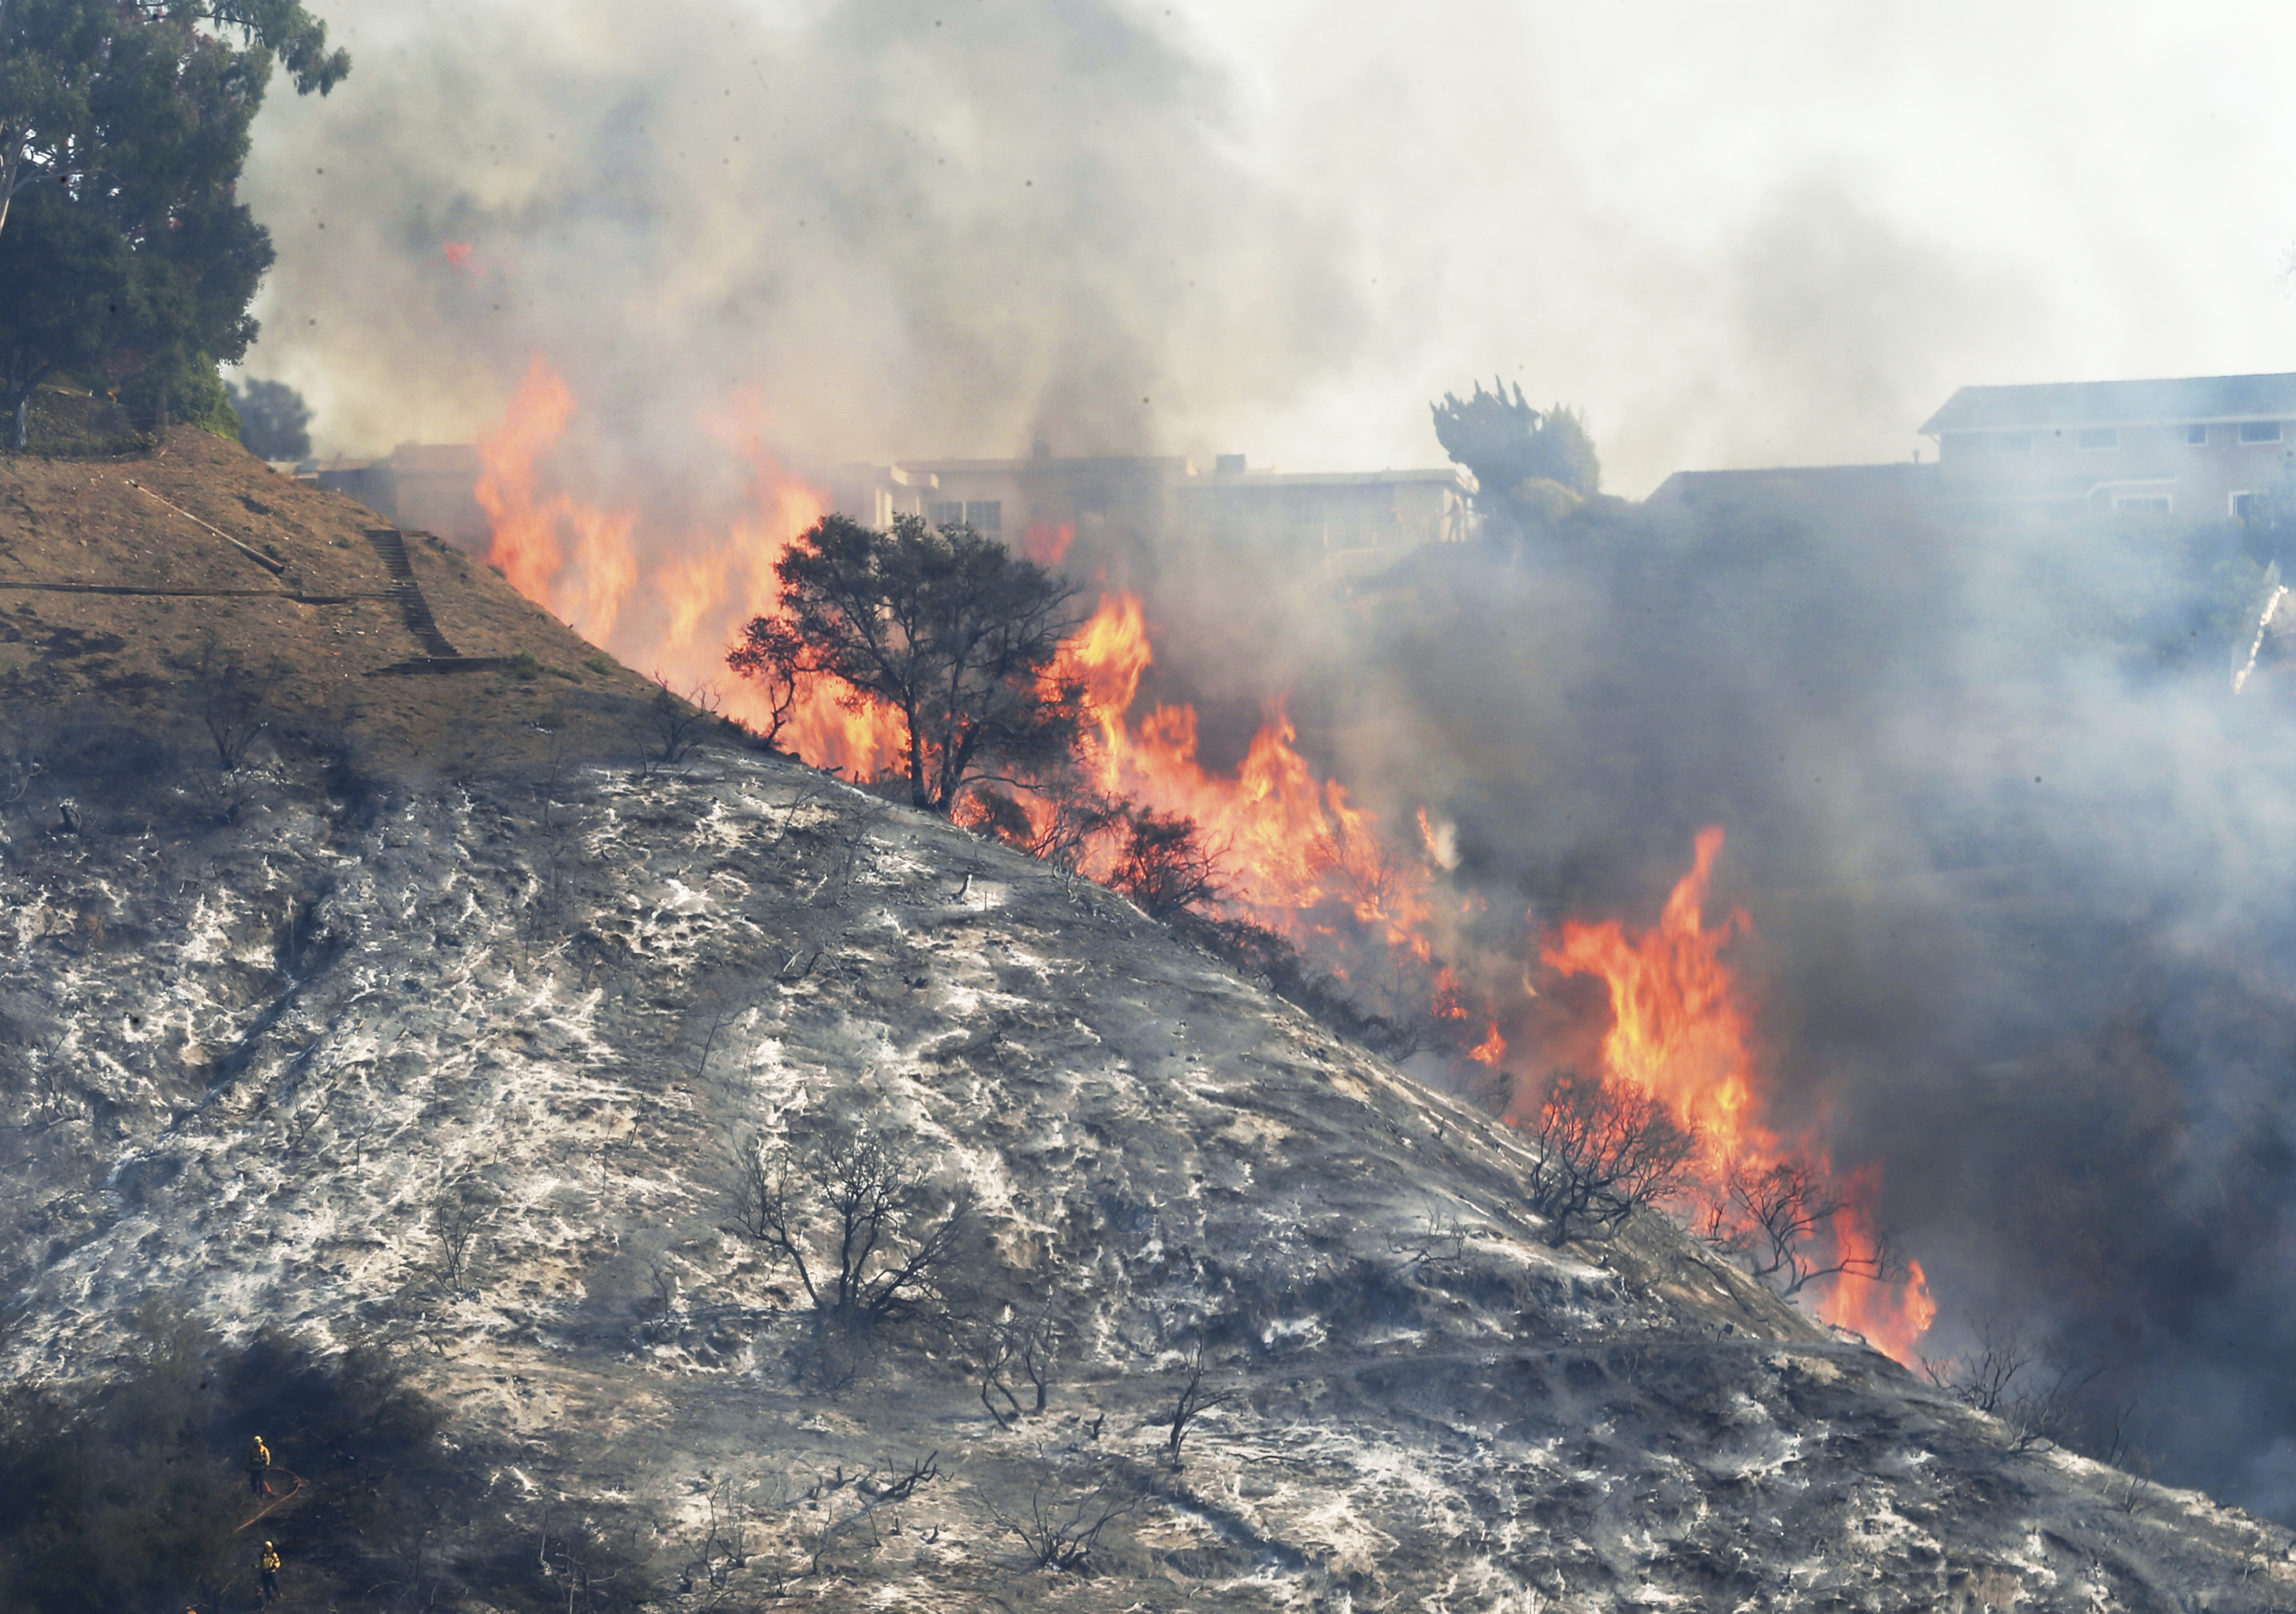 <div class='meta'><div class='origin-logo' data-origin='none'></div><span class='caption-text' data-credit='Reed Saxon/AP Photo'>Flames sweep up a steep canyon wall, threatening homes on a ridge line as the Skirball wildfire swept through the Bel Air district of Los Angeles Wednesday, Dec. 6, 2017.</span></div>